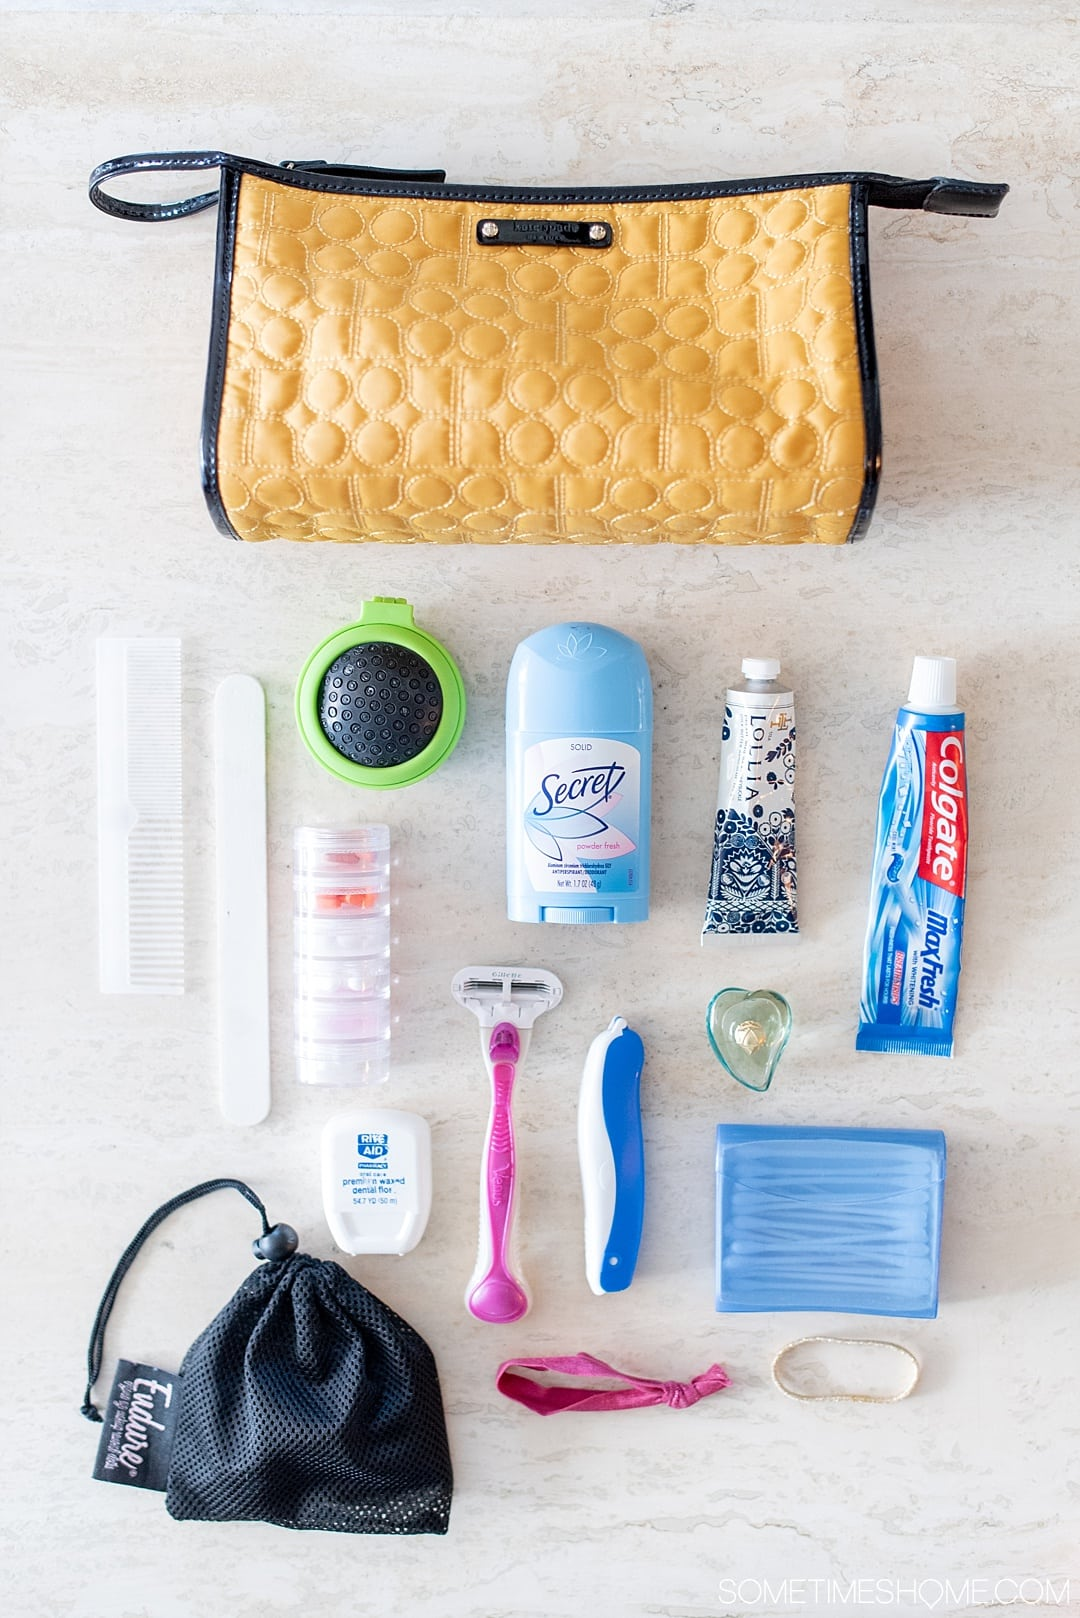 Packing tips for travel planning your checking your luggage when flying or carrying on the airplane. Your suitcase will be ready to go in an instant with this time-saving trick! Click through to Sometimes Home to read the extensive post with photos of the toiletries, organic reusable makeup remover cloth, and more. #travelplanning #packingtips #travel #luggage #suitcase #makeup #organic #makeupremover #makeupcloth #sustainabletravel #sp #endurelash